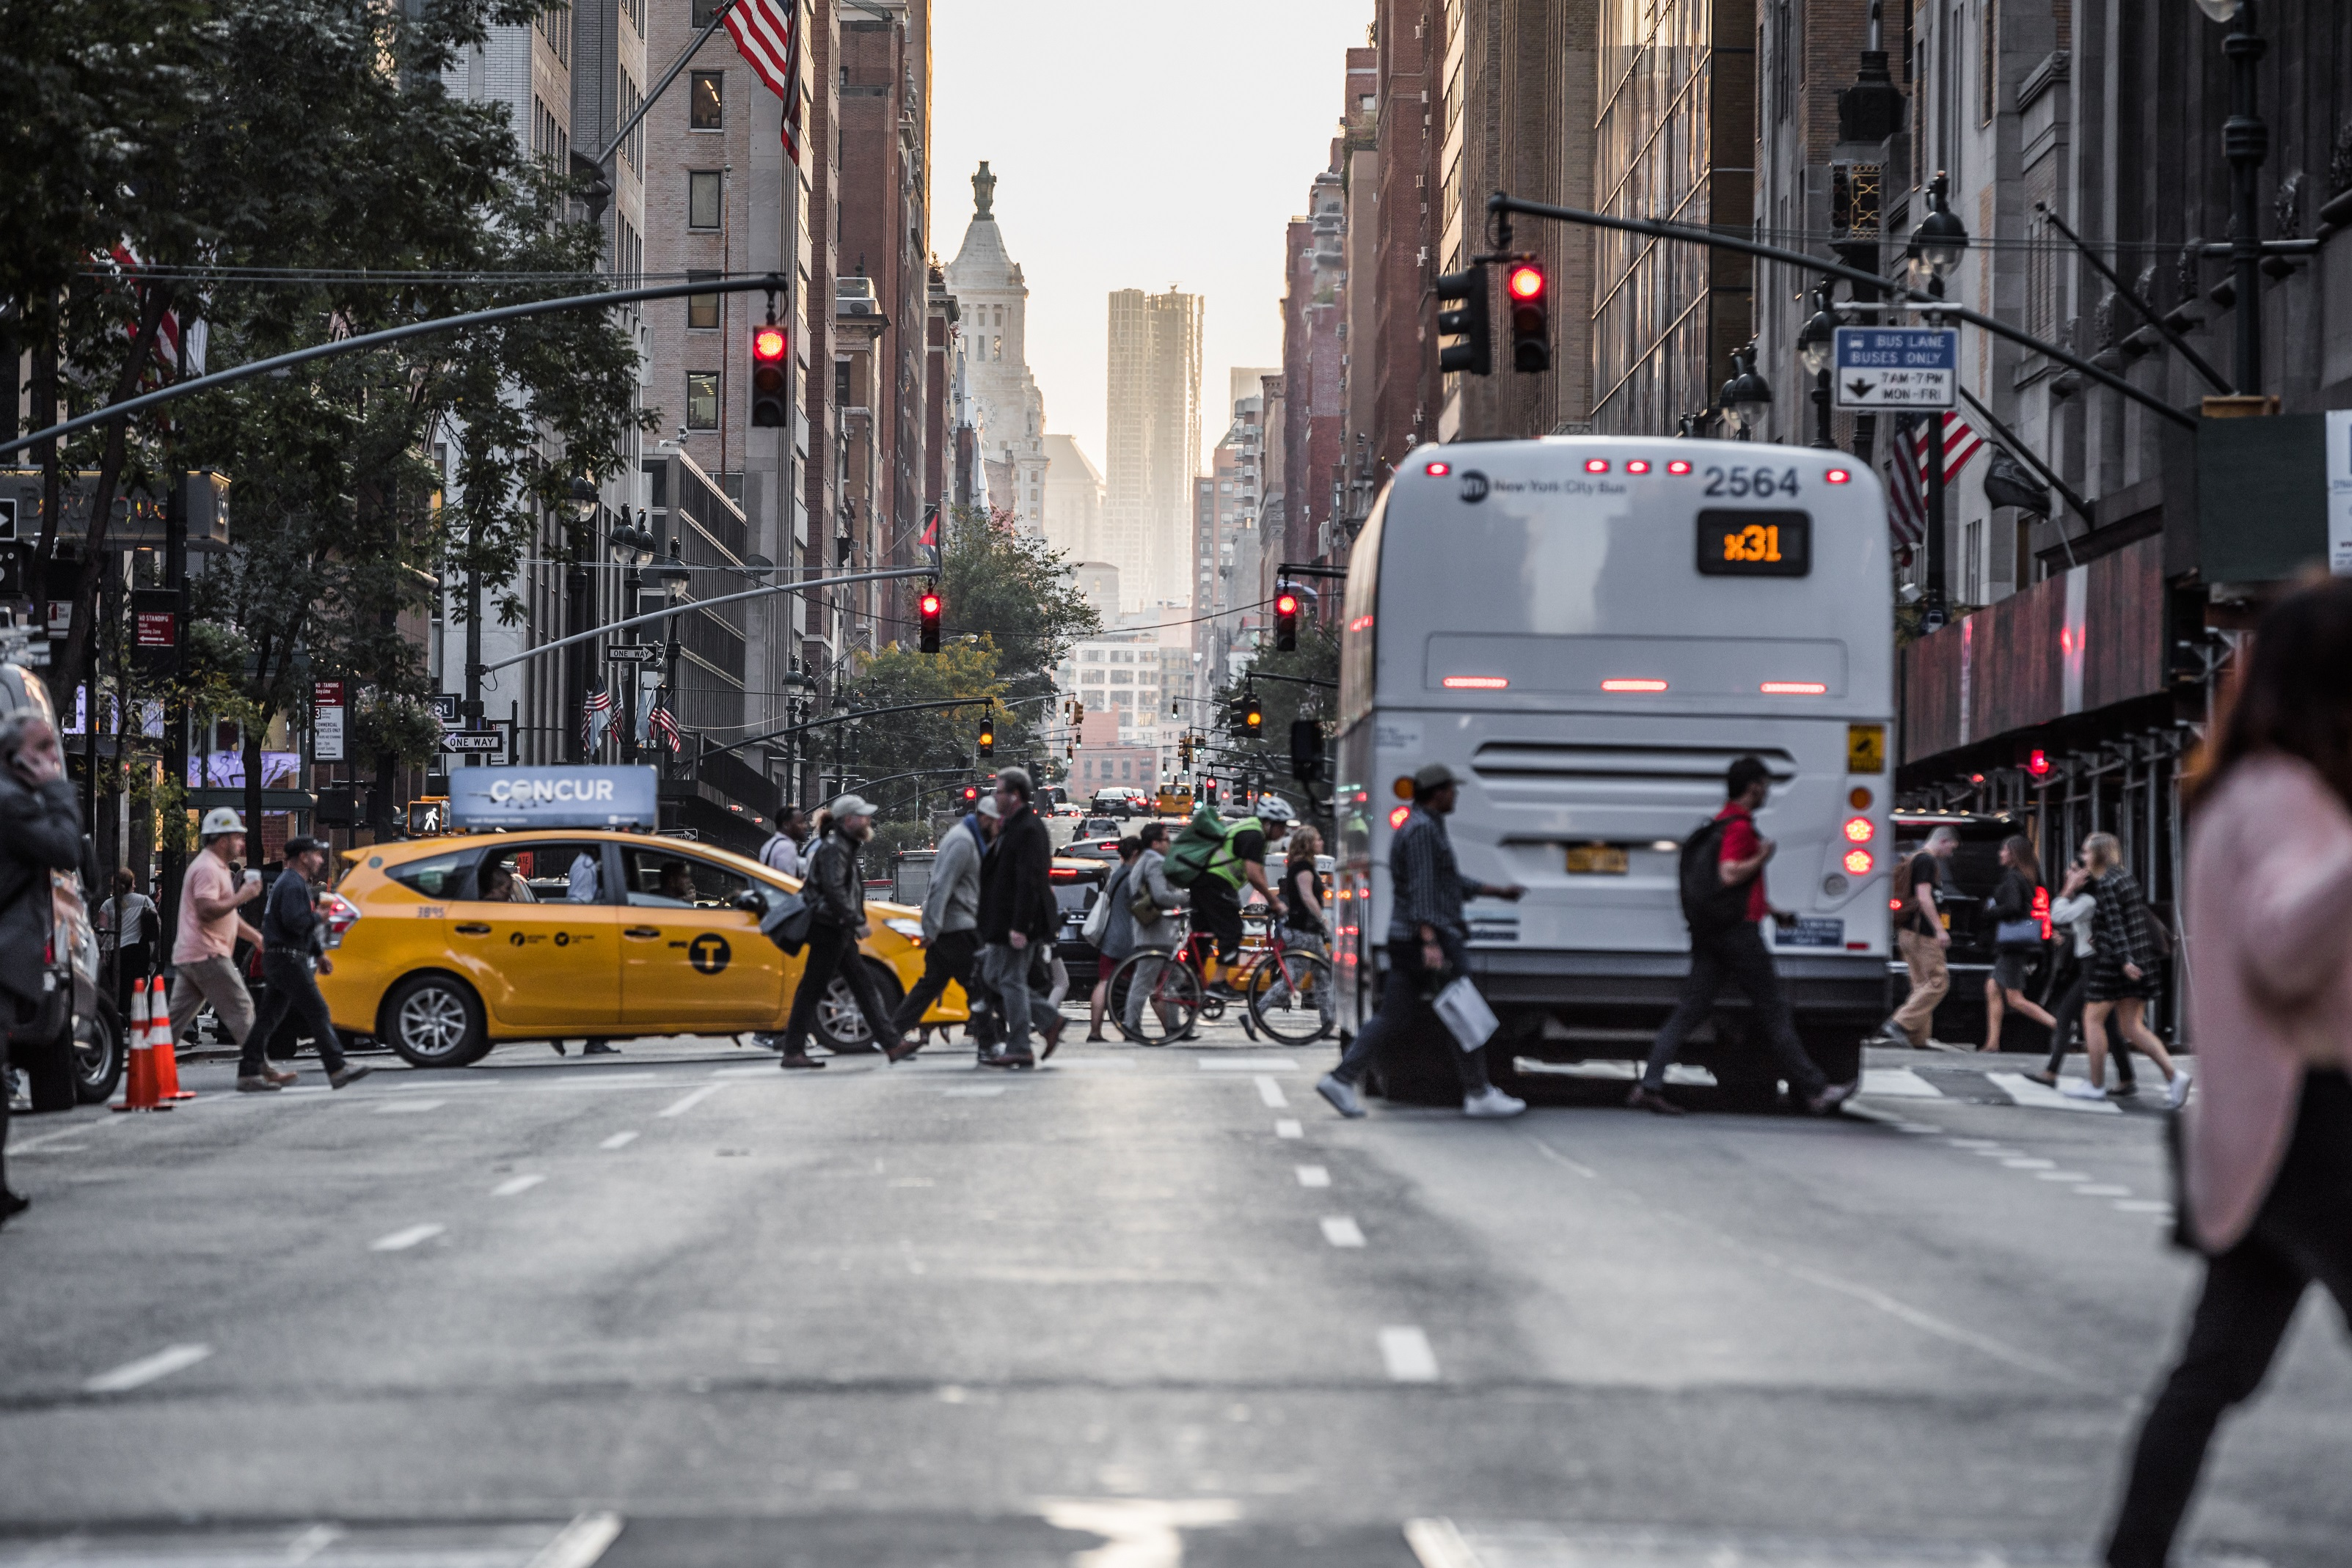 localities will deliver the next wave of transportation investment